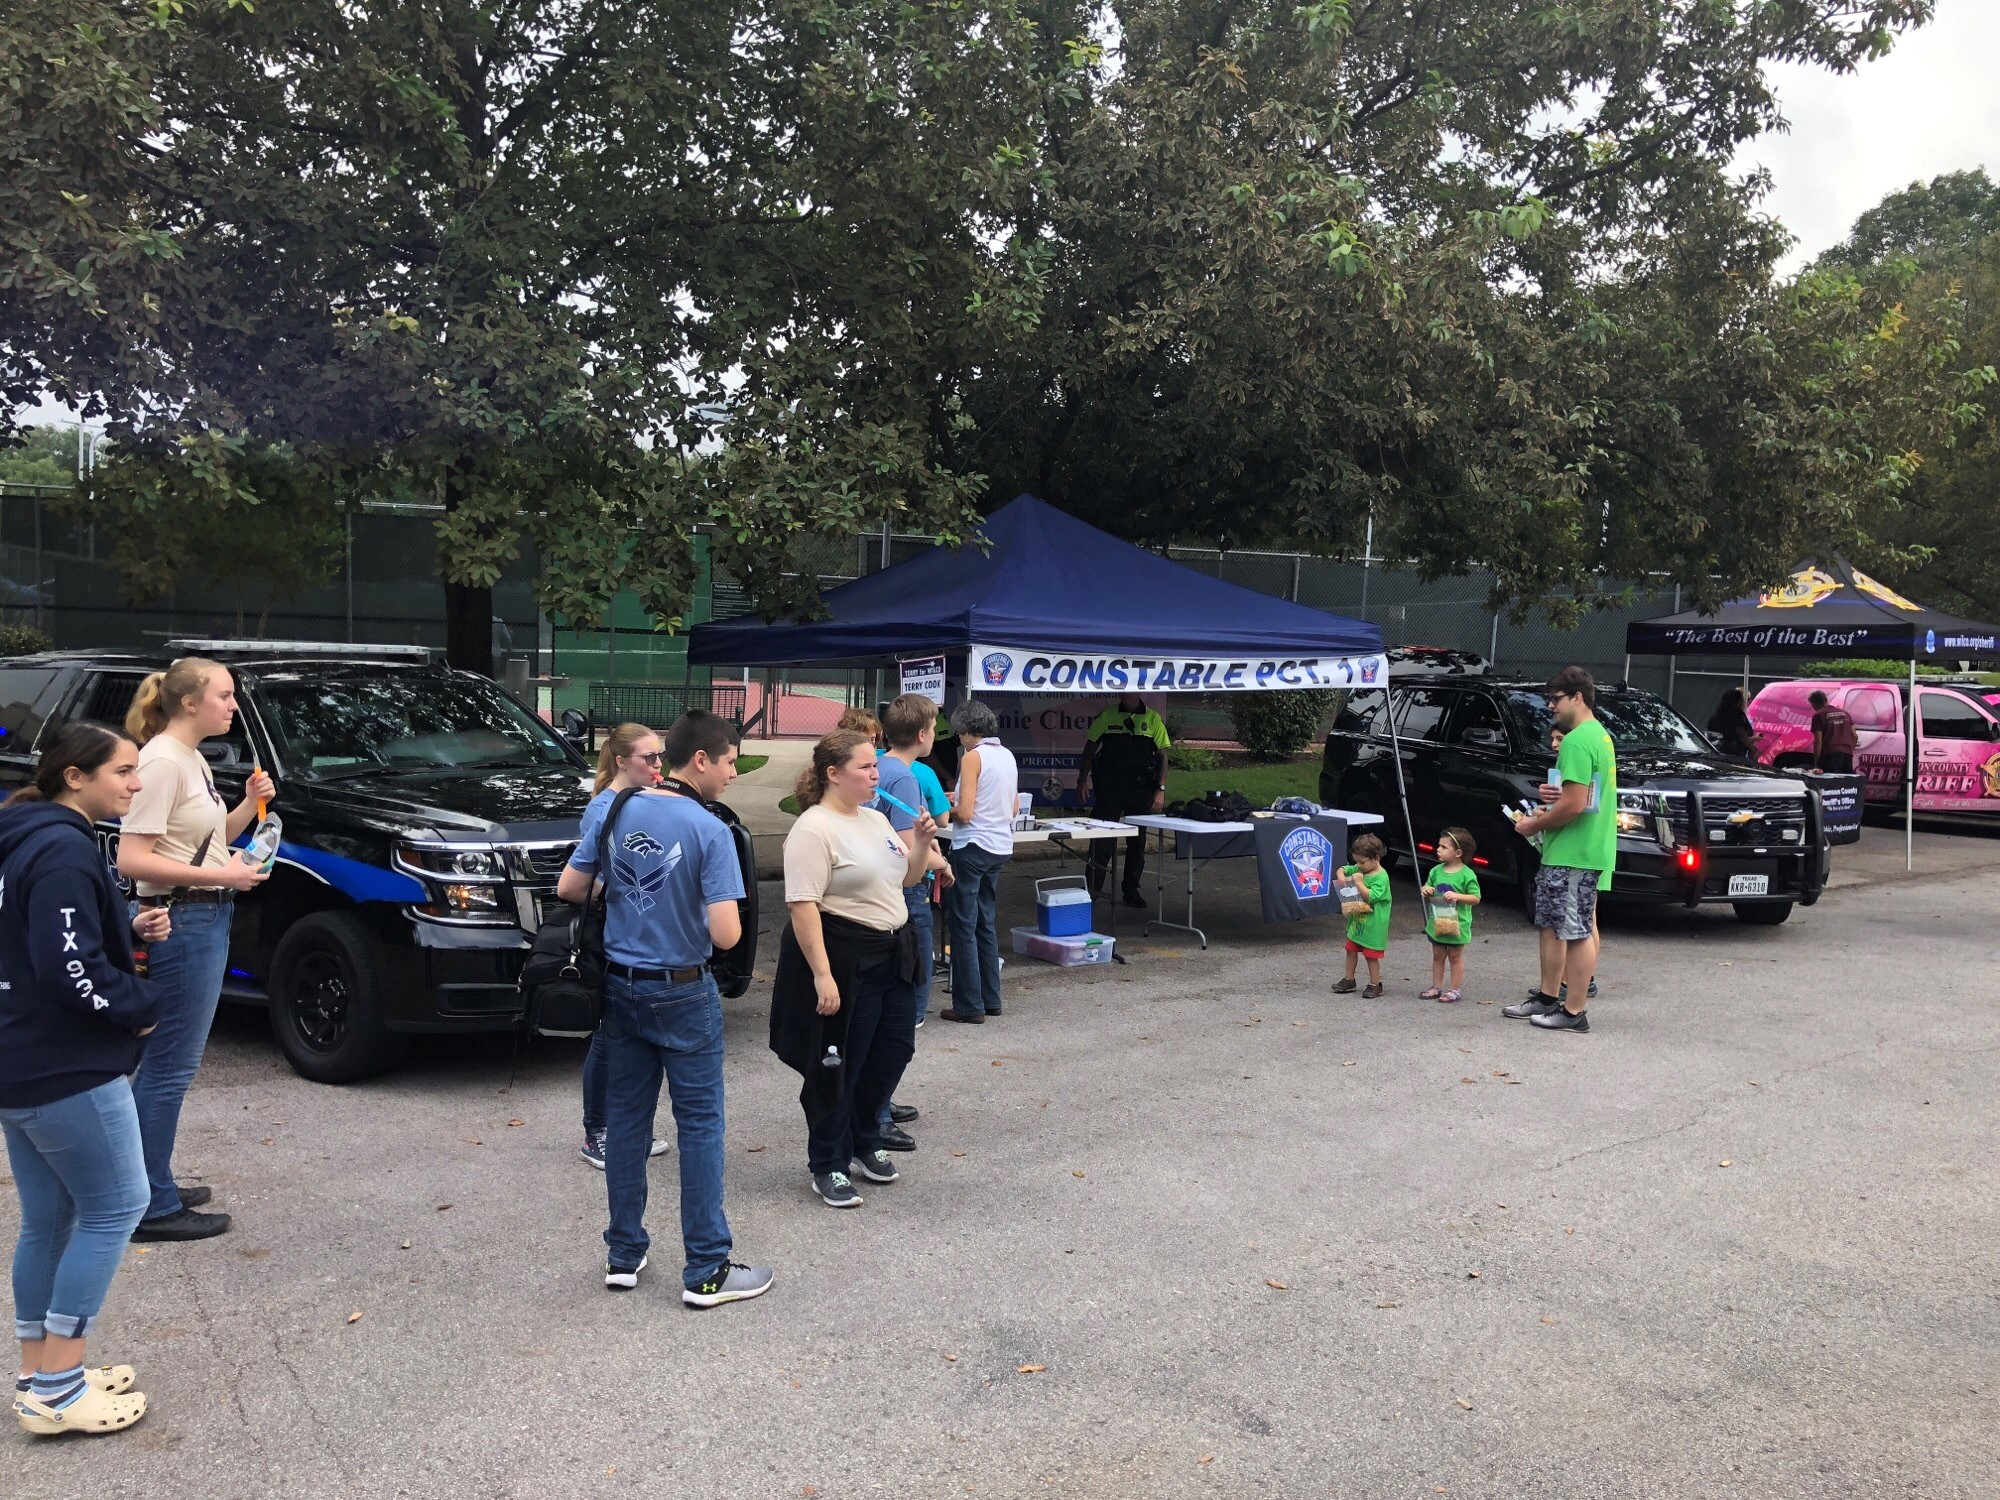 Visitors to Rattan Fest are milling around Constable Vinnie Cherrone's booth and canopy, while Commissioner Cook reviews handouts right before the rain started.